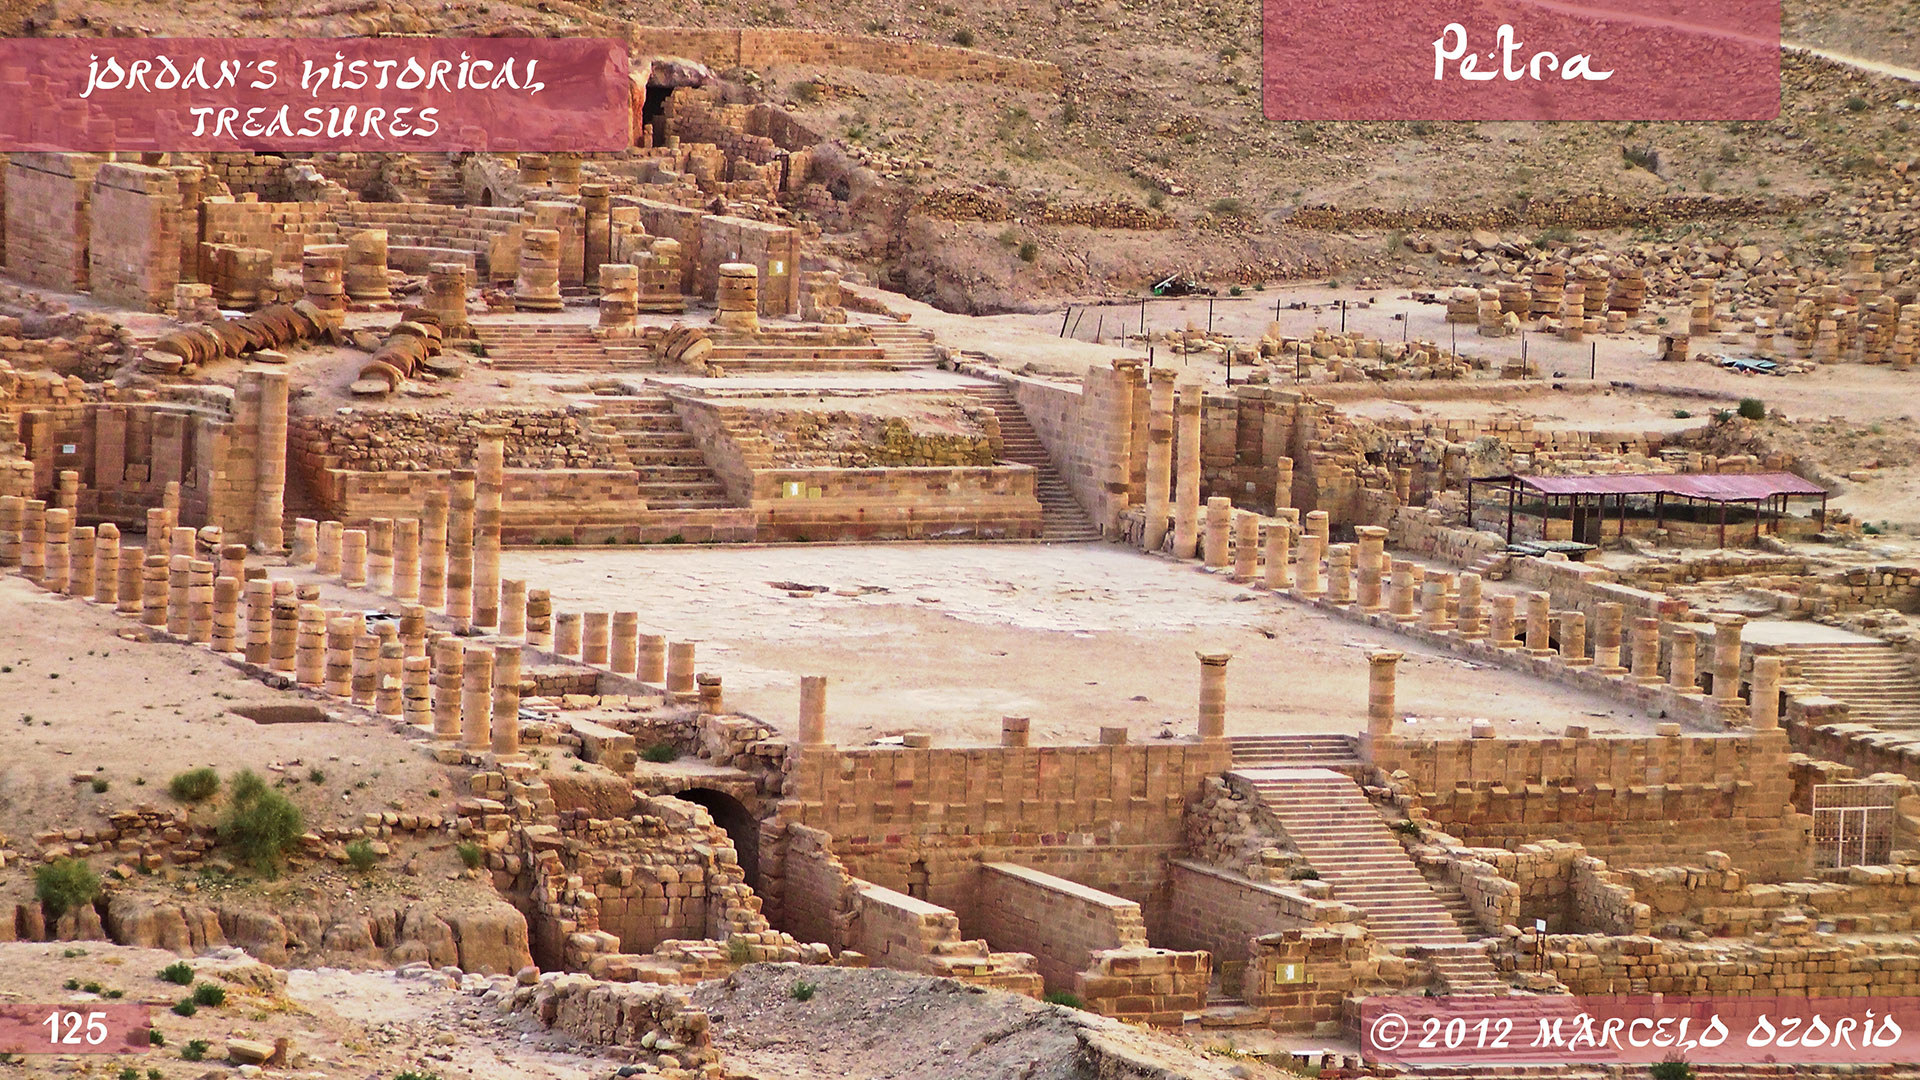 Petra Archaeological City Jordan 45 - The Astonishing Treasure at Petra - Jordan